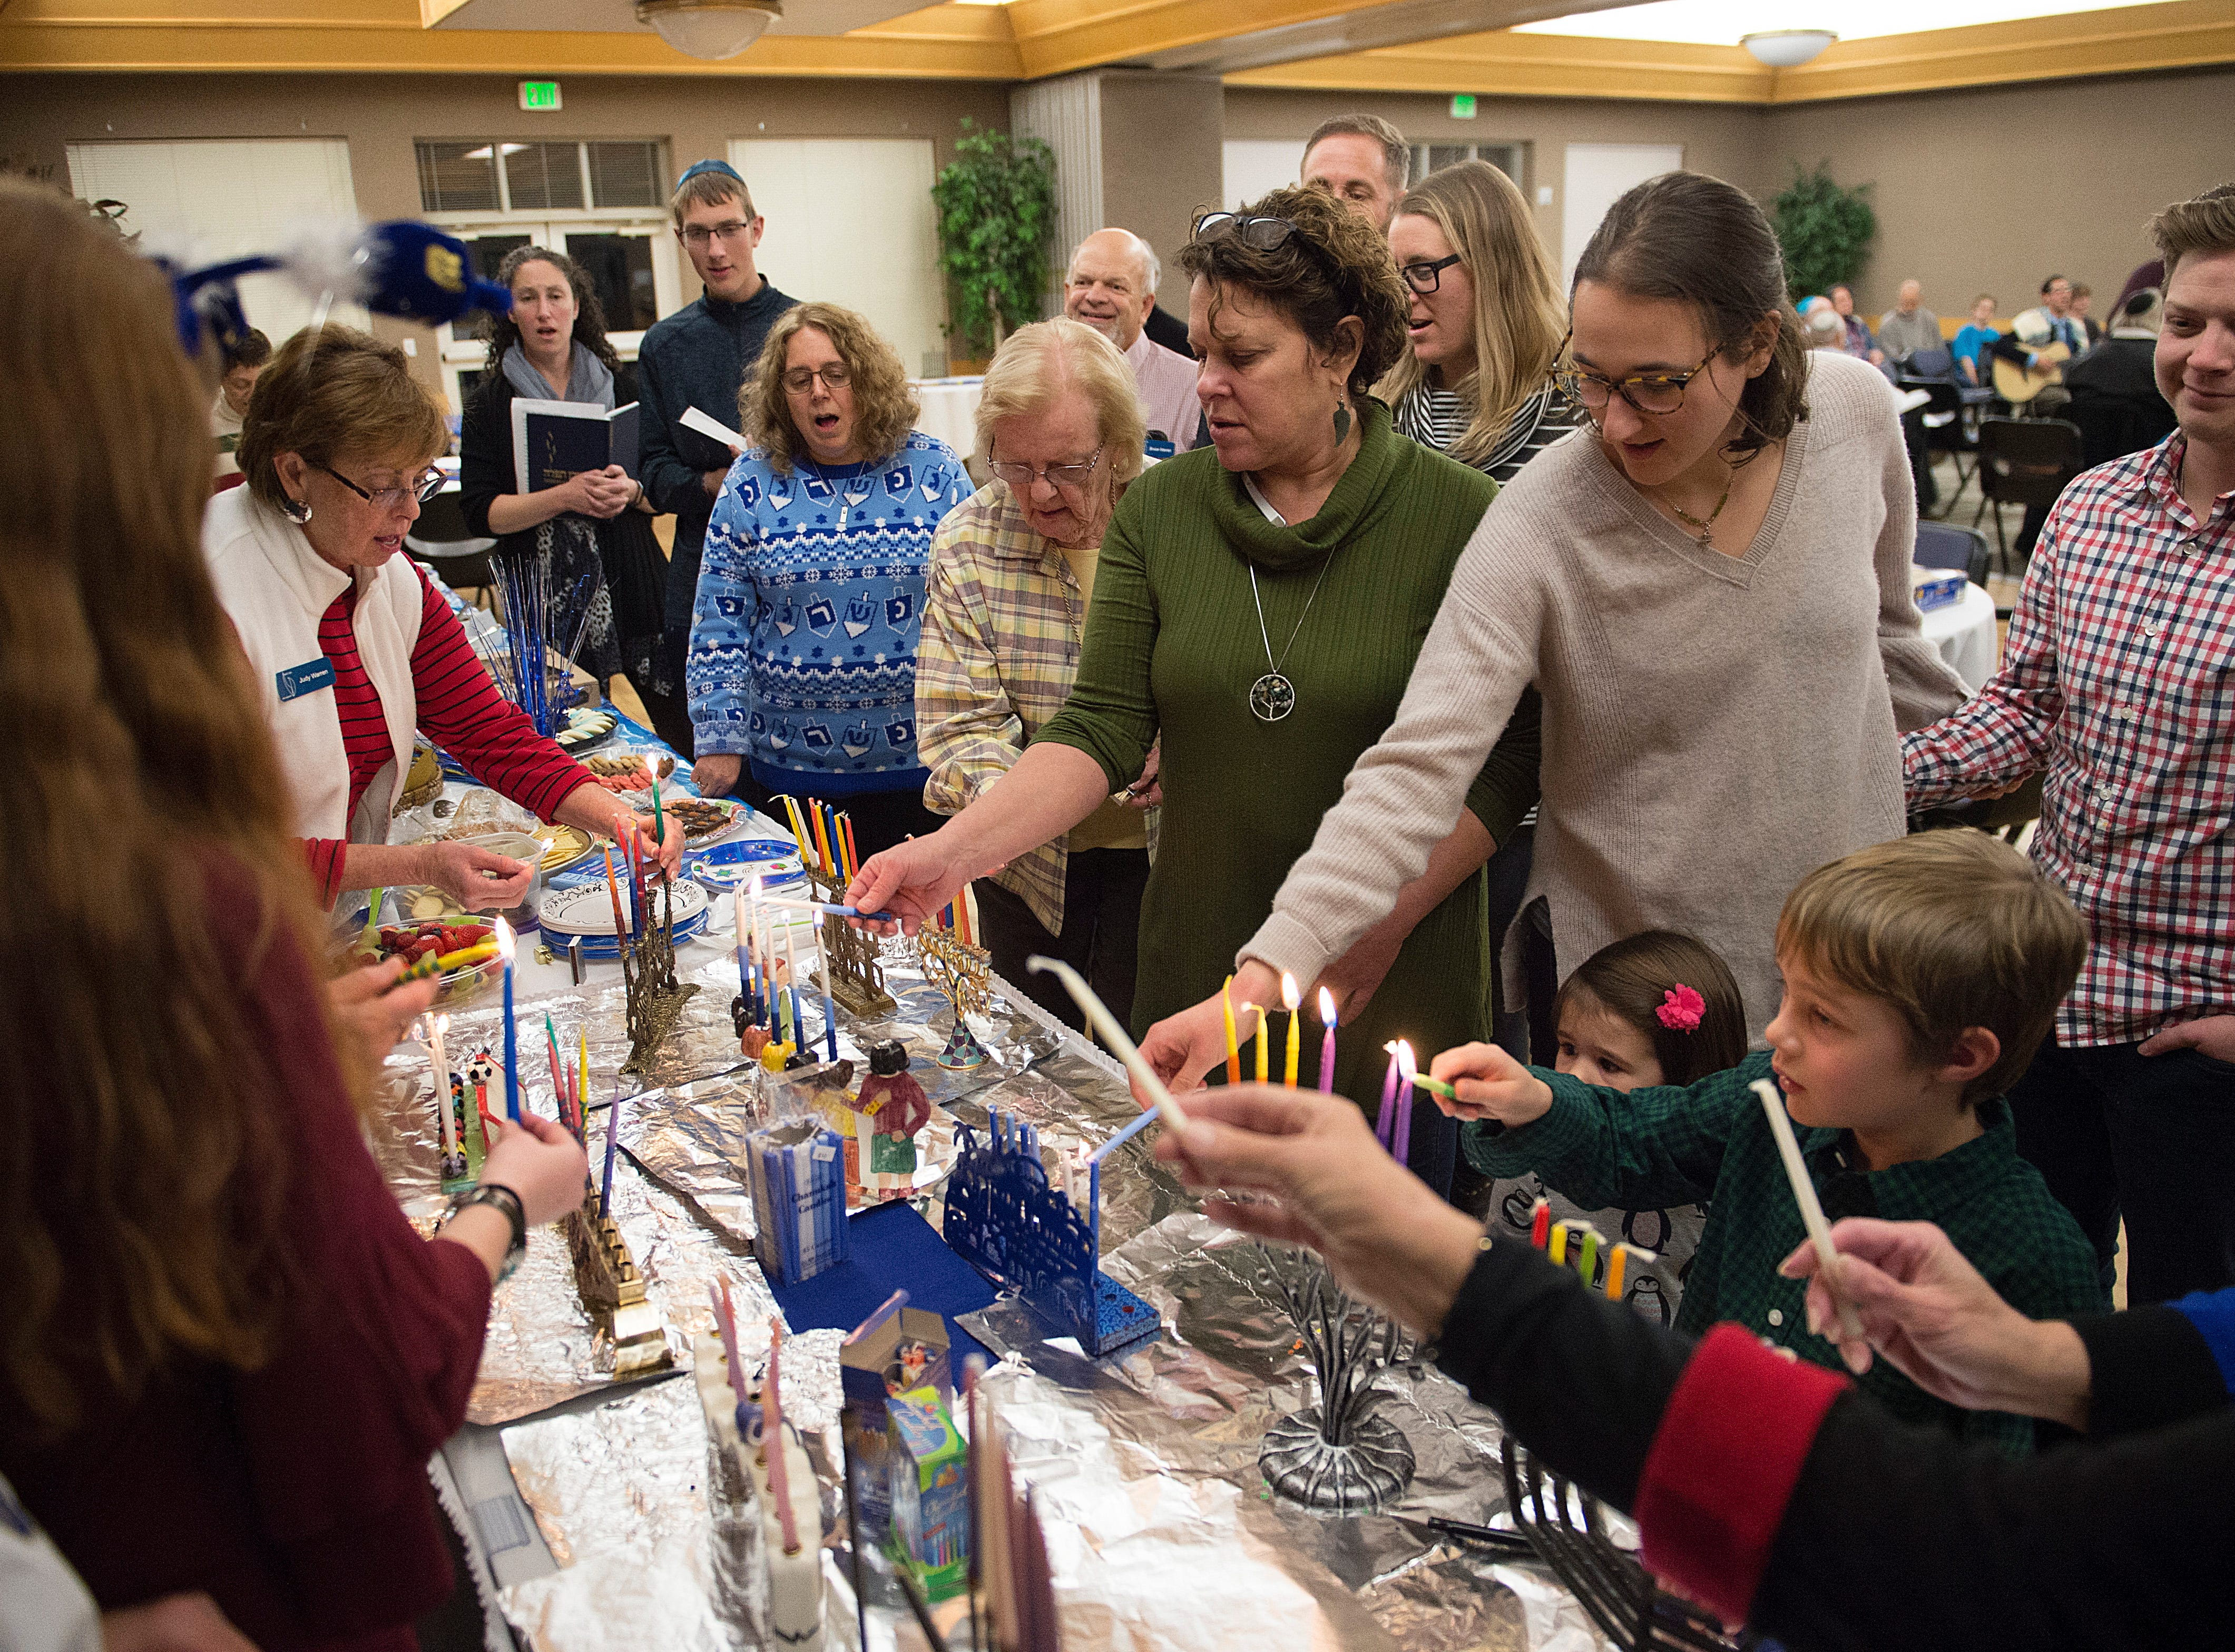 Candles are lit on menorahs on the sixth night of Hanukkah during a family gathering with Temple Or Hadash at the Fort Collins Senior Center on Friday, December 7, 2018.